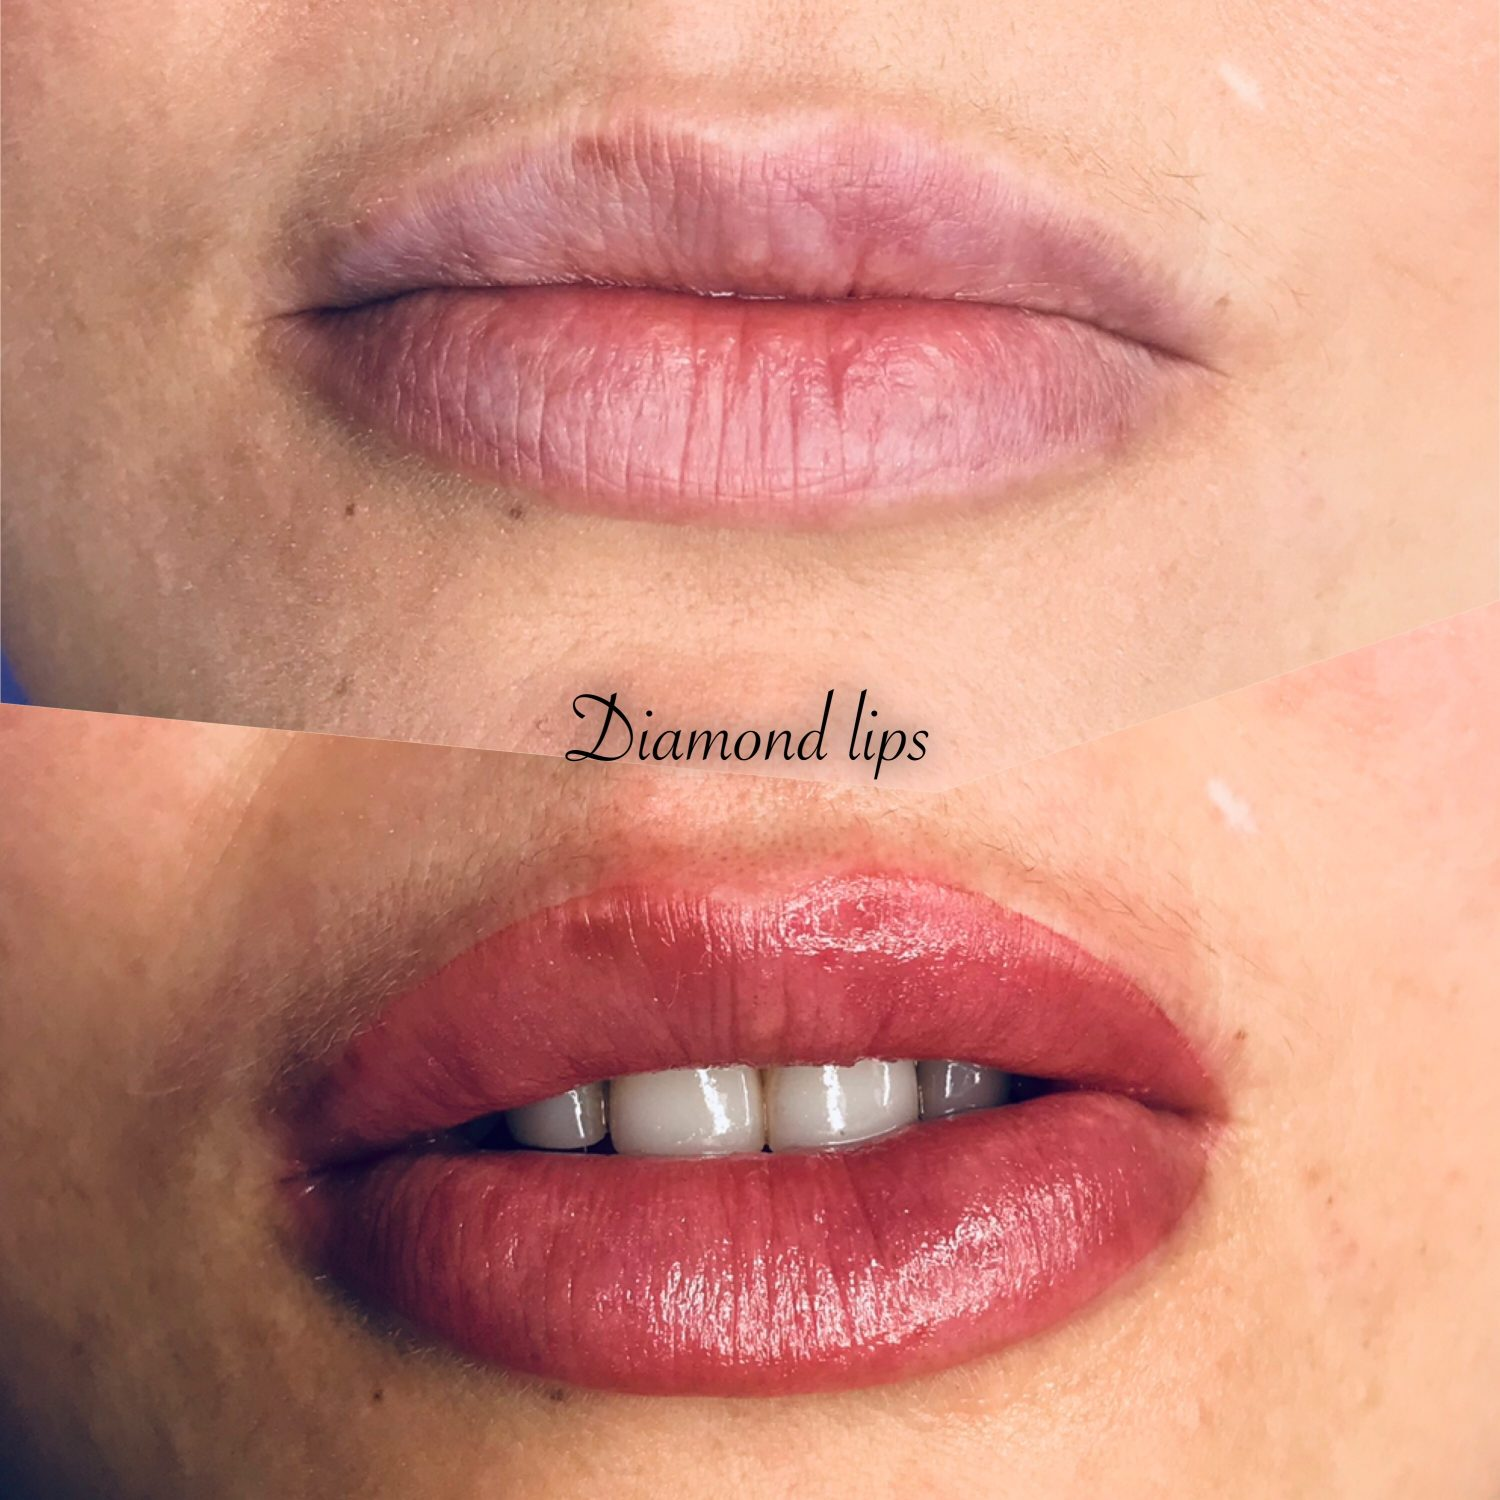 diamond lips pmu